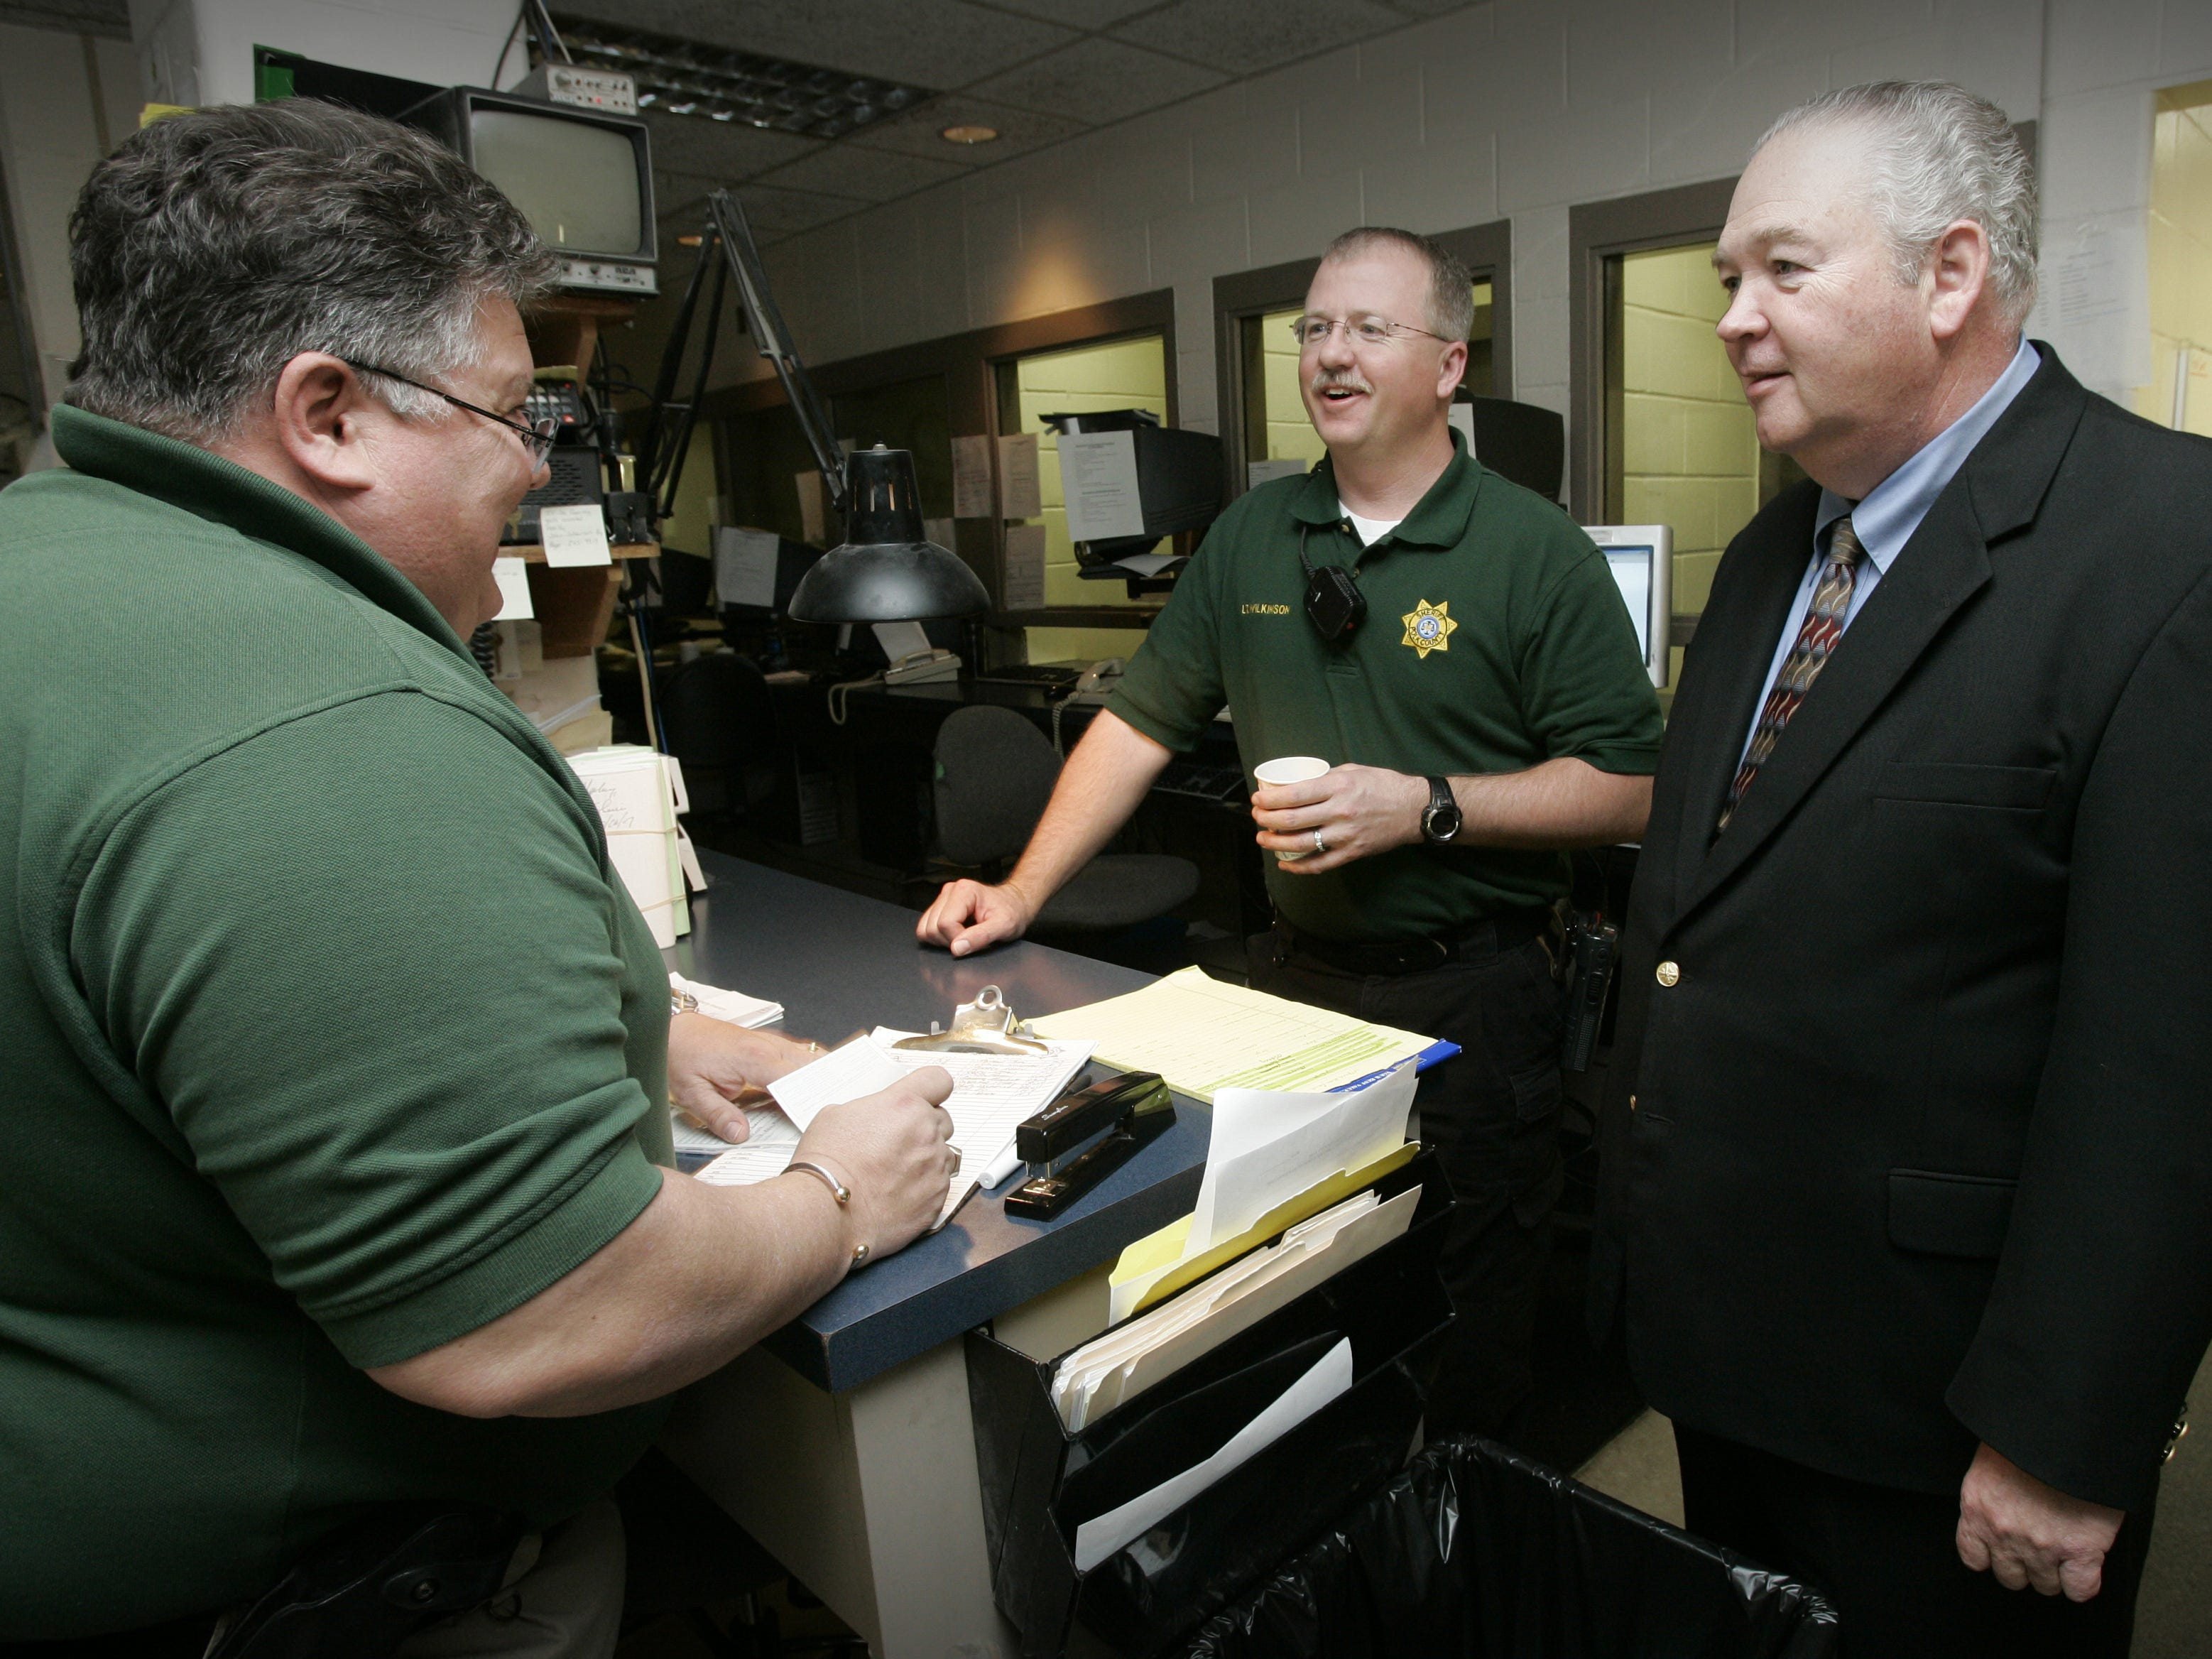 Polk County Jail Chief Sheriff's Deputy Bill McCarthy, right, Sgt. Craig Matzke, left, and Lt. Jeff Wilkinson, center, at the Polk County Jail on March 26,  2007 in Des Moines.